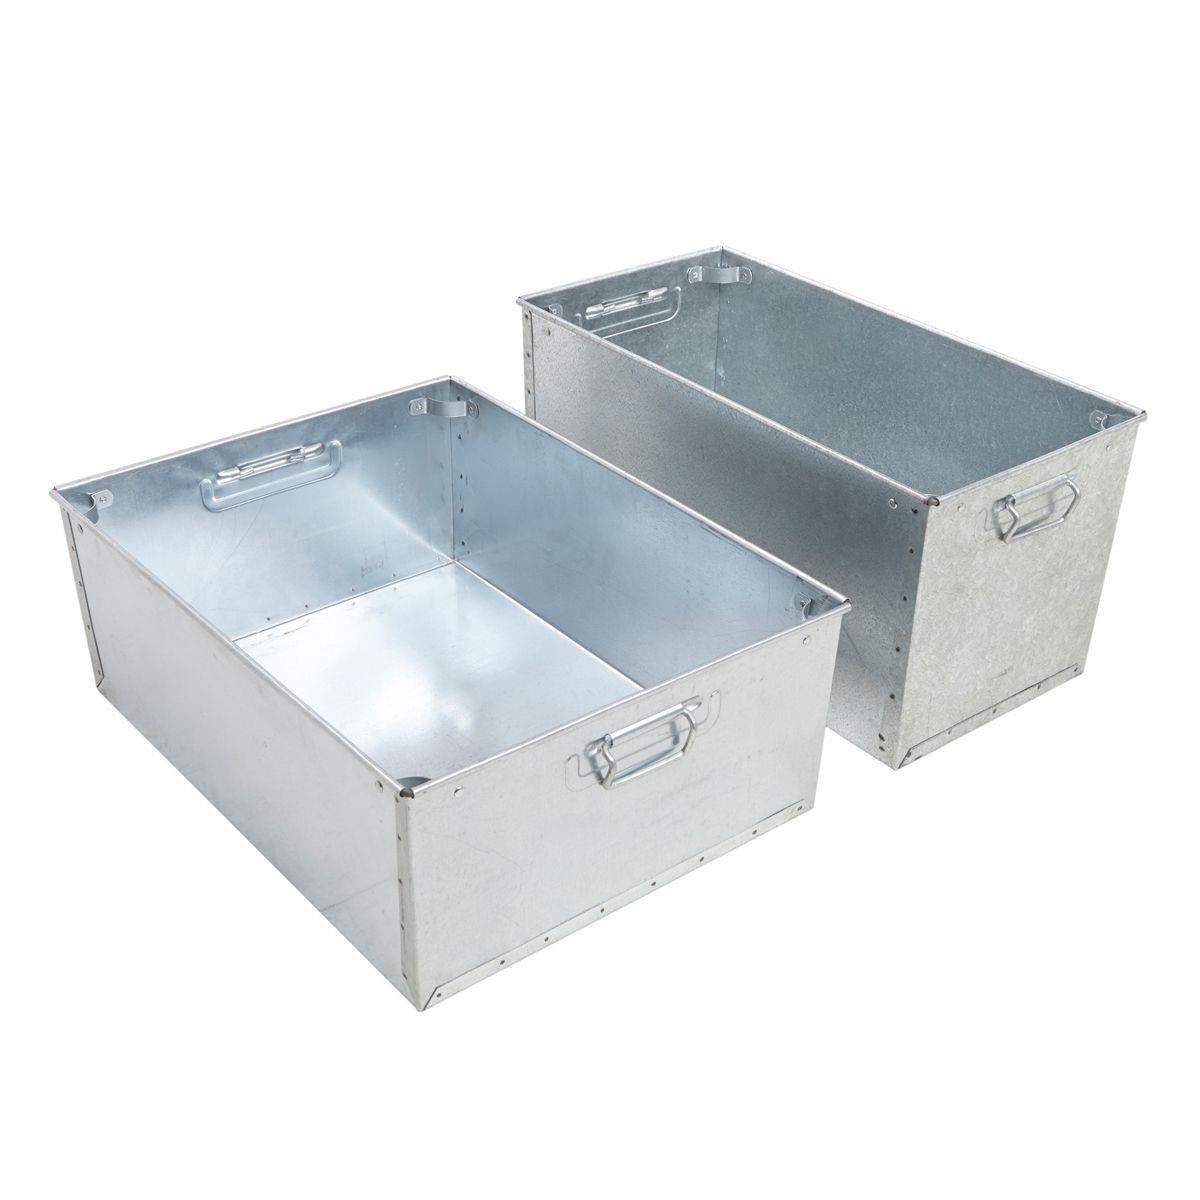 Buy Galvanised Steel Stacking Work Pans Small From BiGDUG. Free Next Day  Delivery On Orders Over Lowest Price Promise. Experts In Storage Solutions.